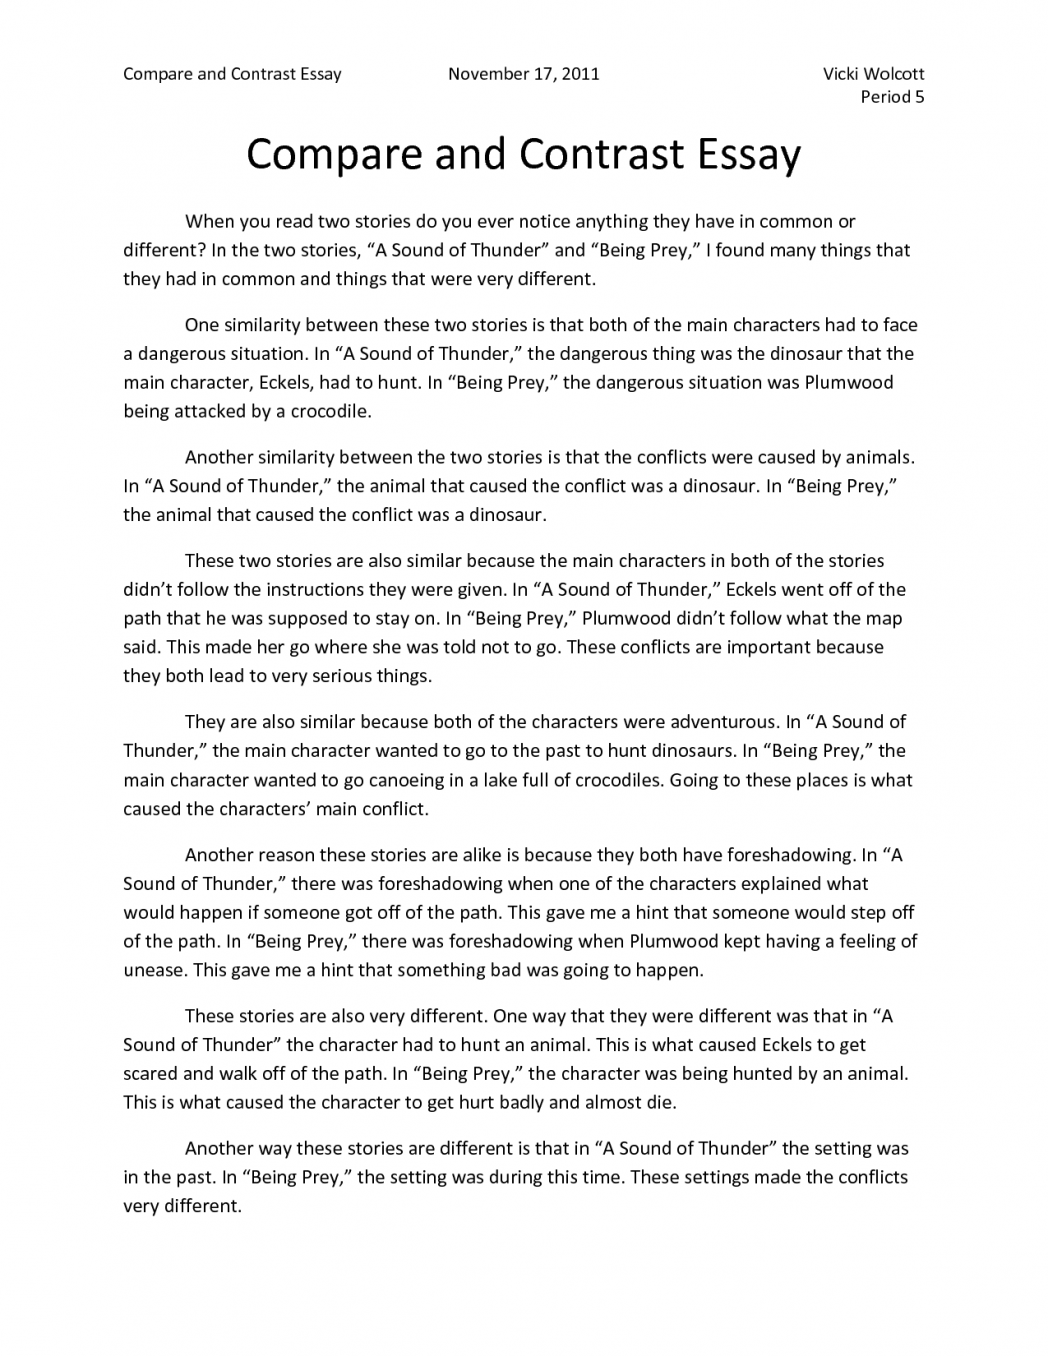 004 Argumentative Essay Topic Ideas Causal Topics Compare And Contrast For Argument Or Position 1048x1356 Surprising Middle School College Full